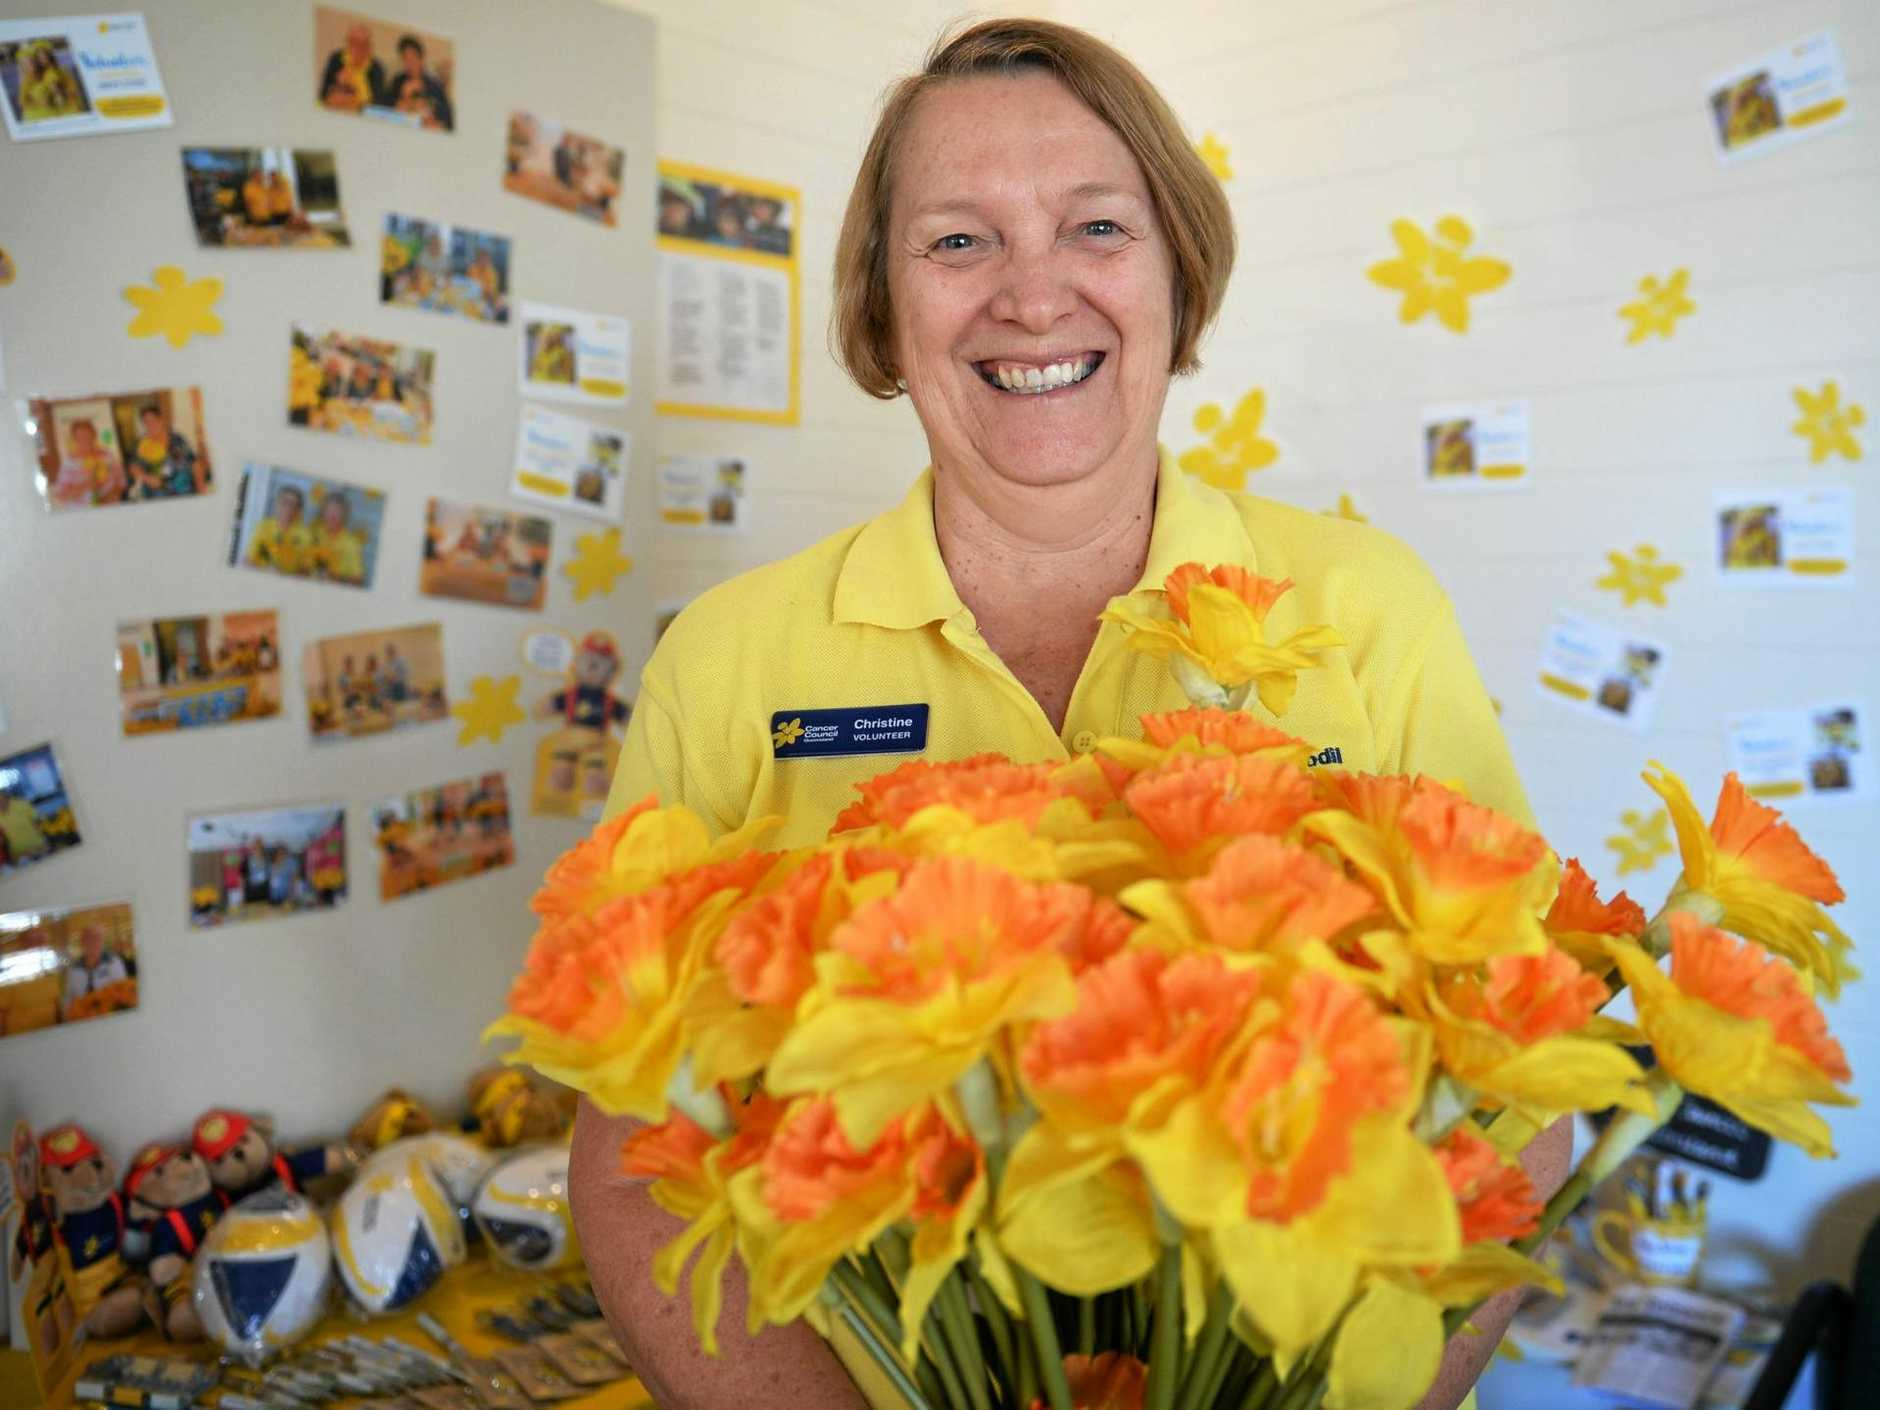 HOPE: Cancer Council volunteer Christine Dobele getting ready for Daffodil Day.